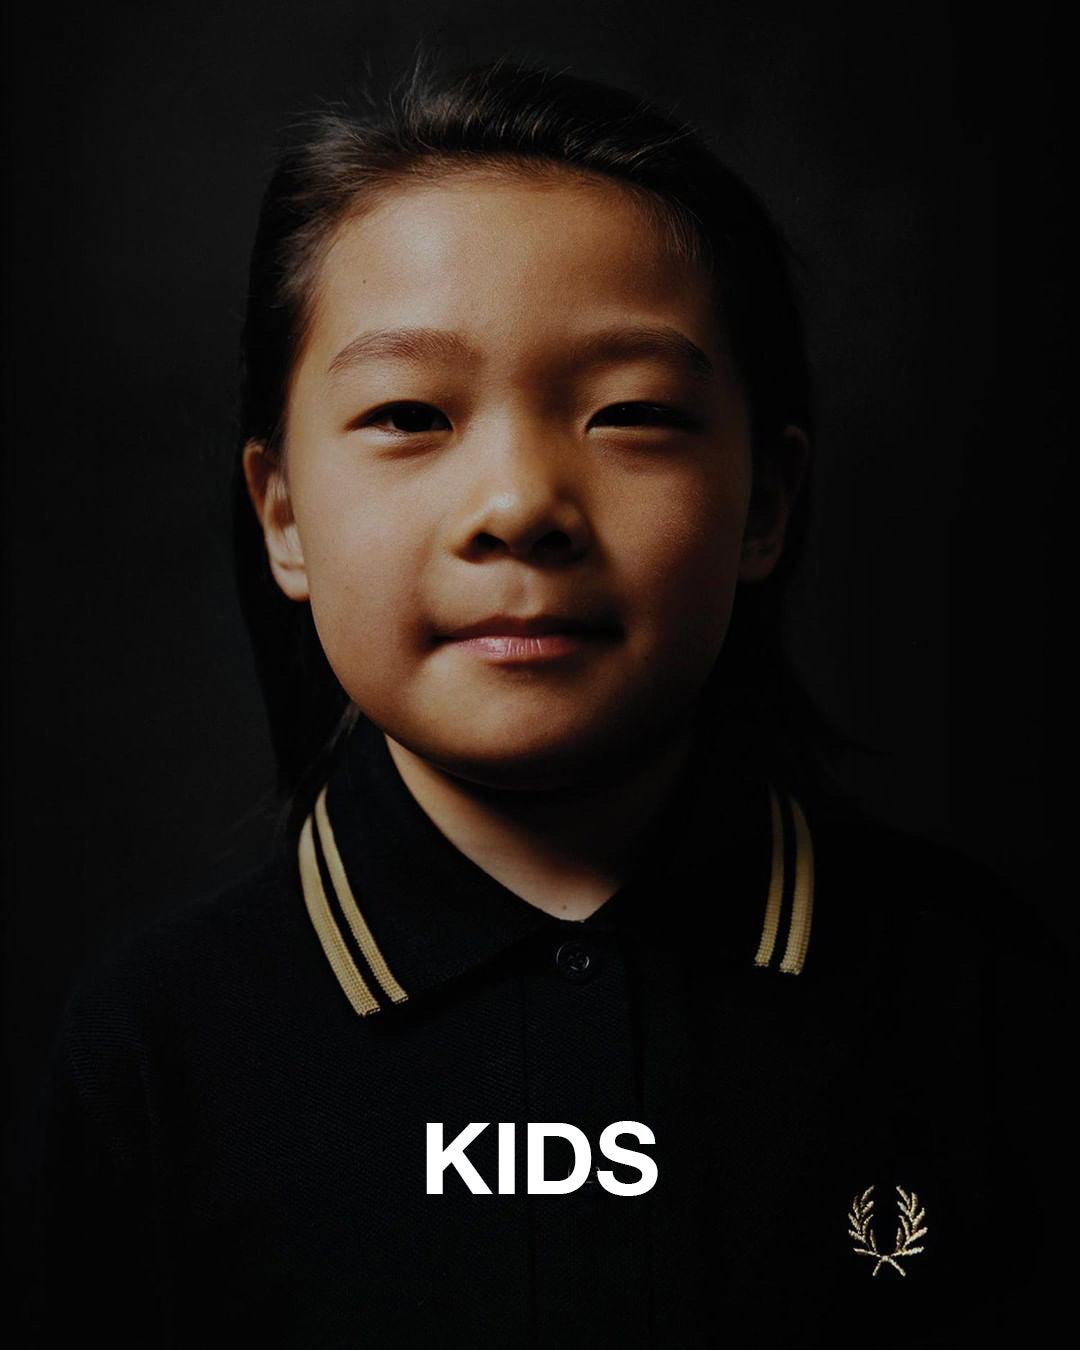 https://www.707.co.id/collections/fred-perry-kids-collections